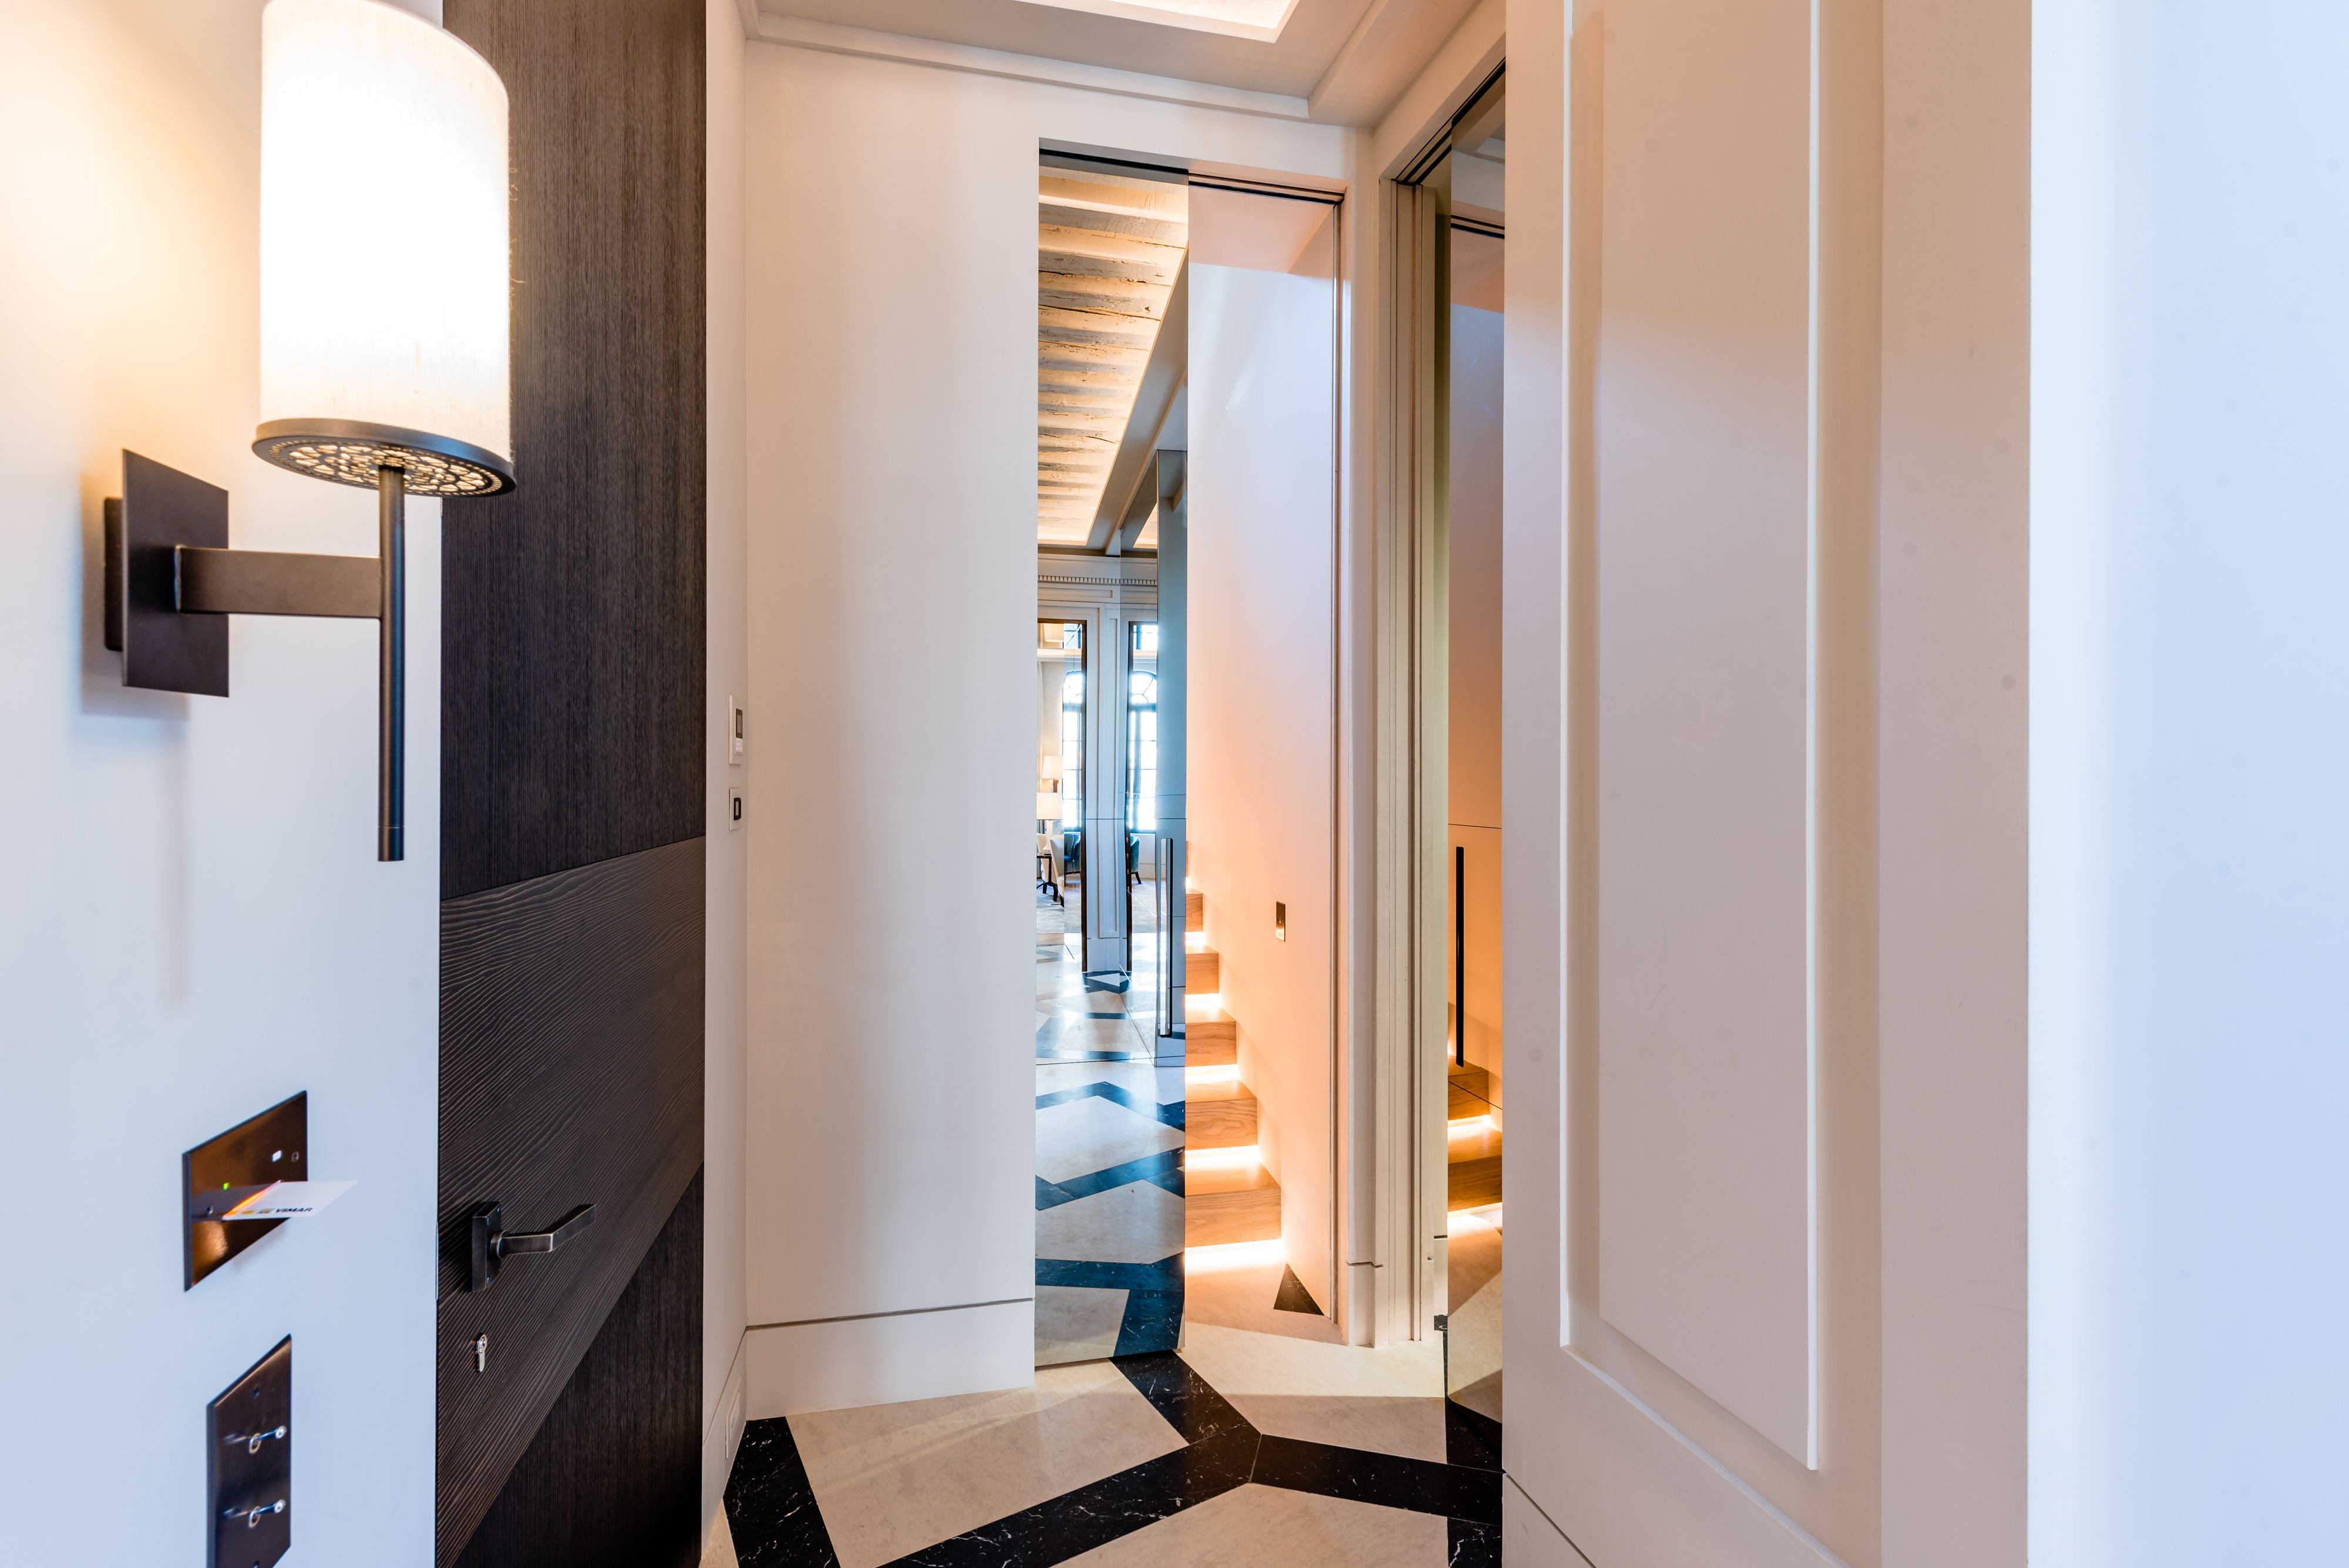 Palazzo Volpi In Venice Furnished With Linvisibile Concealed